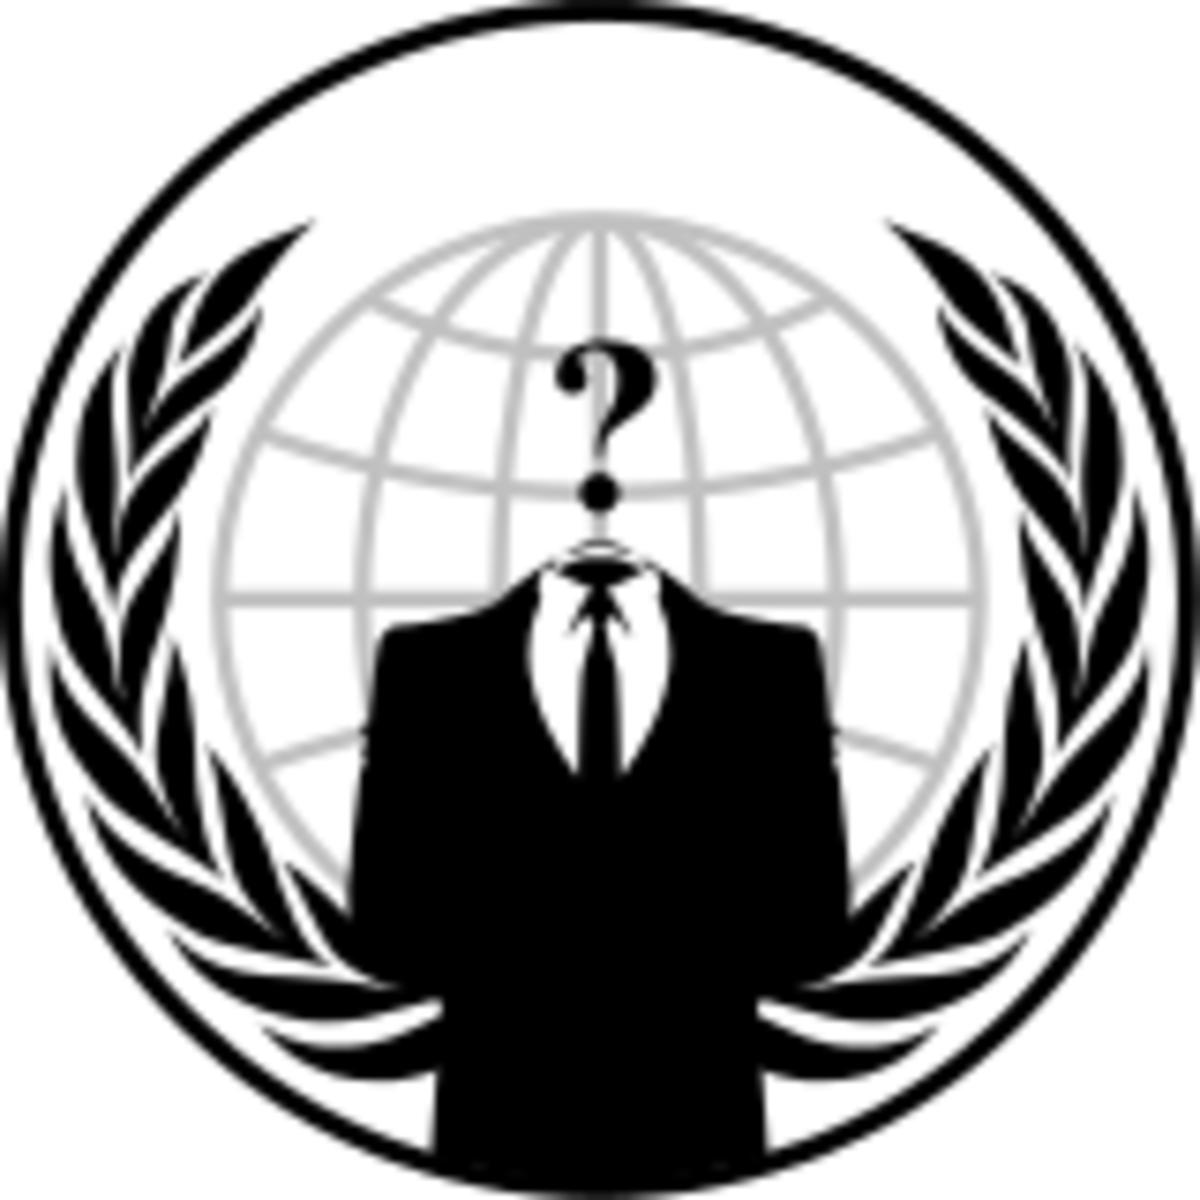 A symbol of the notorious group known as Anonymous, digital 'Freedom Fighters'.